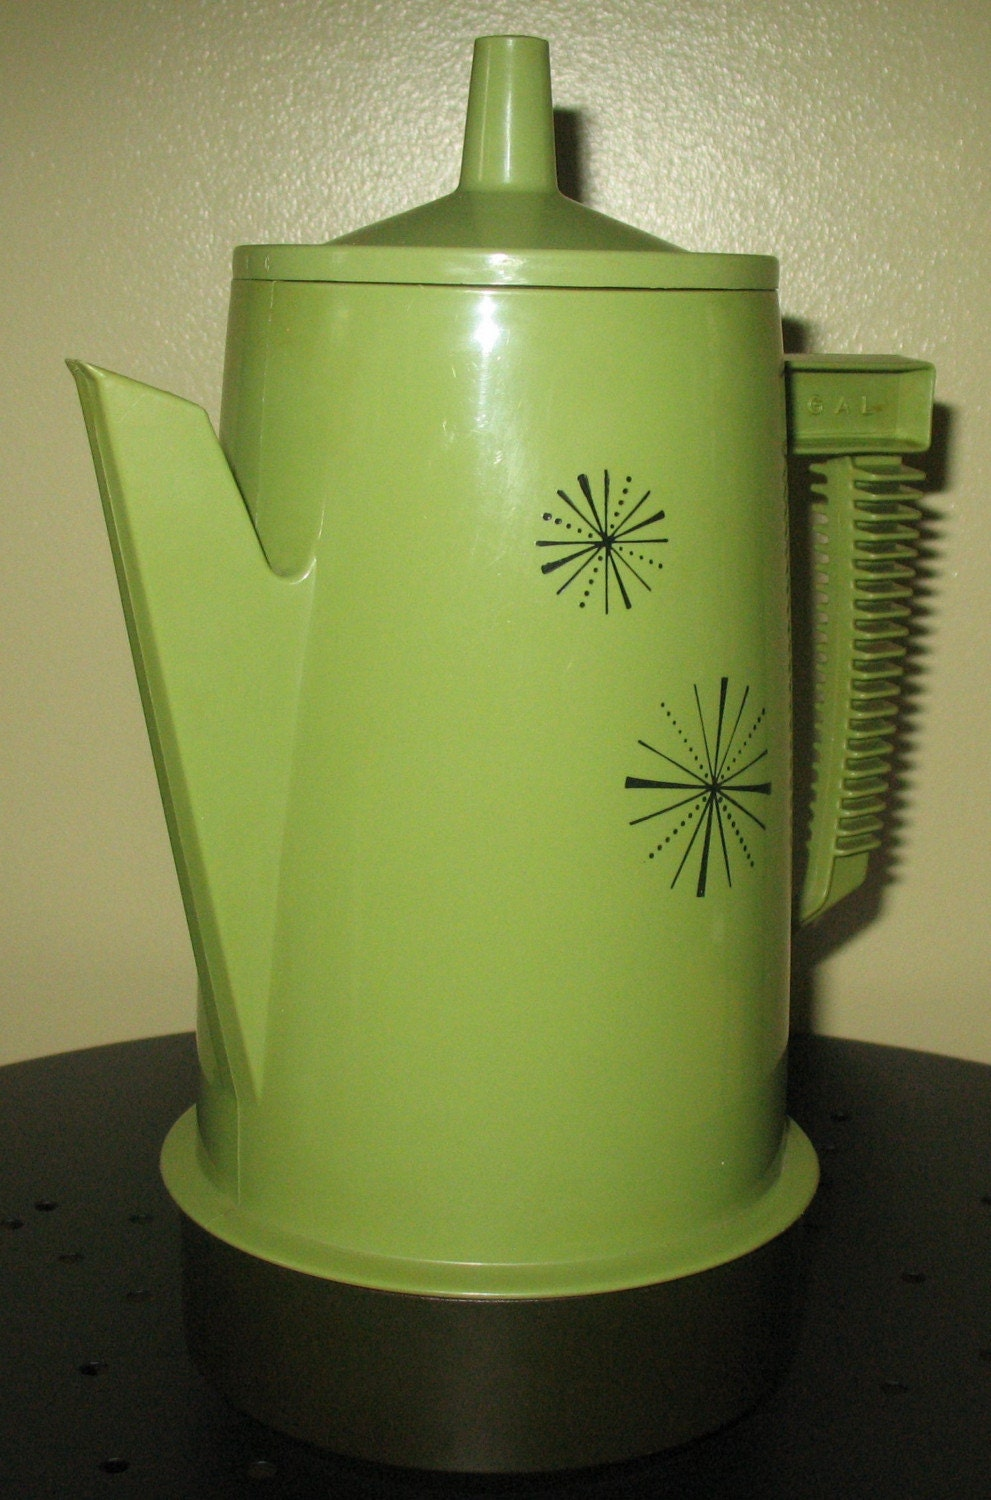 Regal Coffee Maker Instructions : VINTAGE REGAL POLY PERK COFFEE MAKER by SoKitsch on Etsy